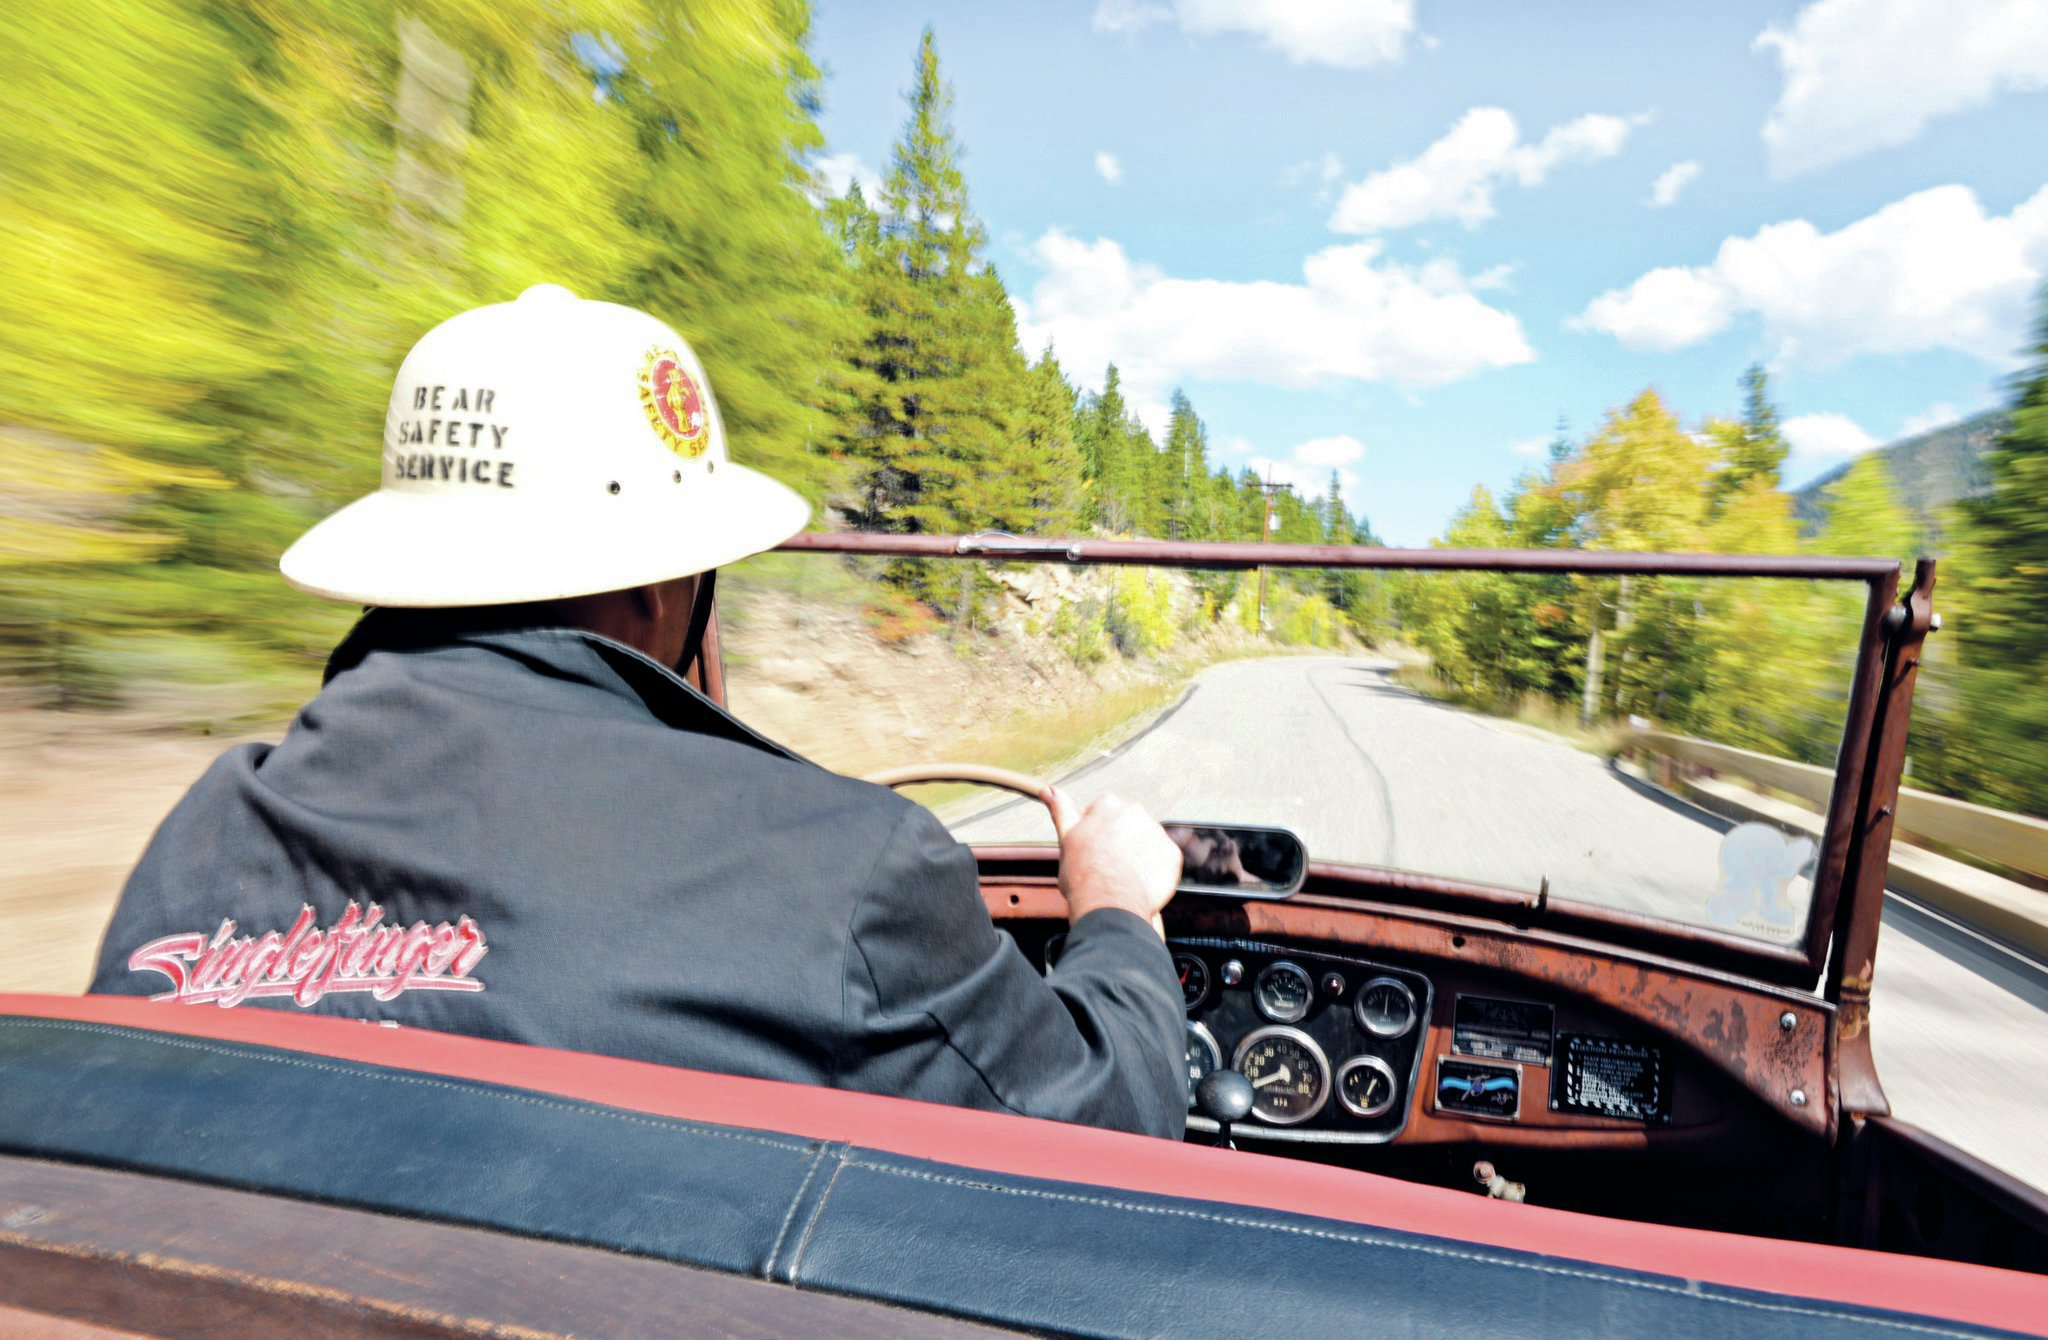 Larry Filipczak puts his '32 roadster through the paces, running up the steep incline that makes the HRHC such an exciting event. You're not just chasing time, you're battling gravity as well.